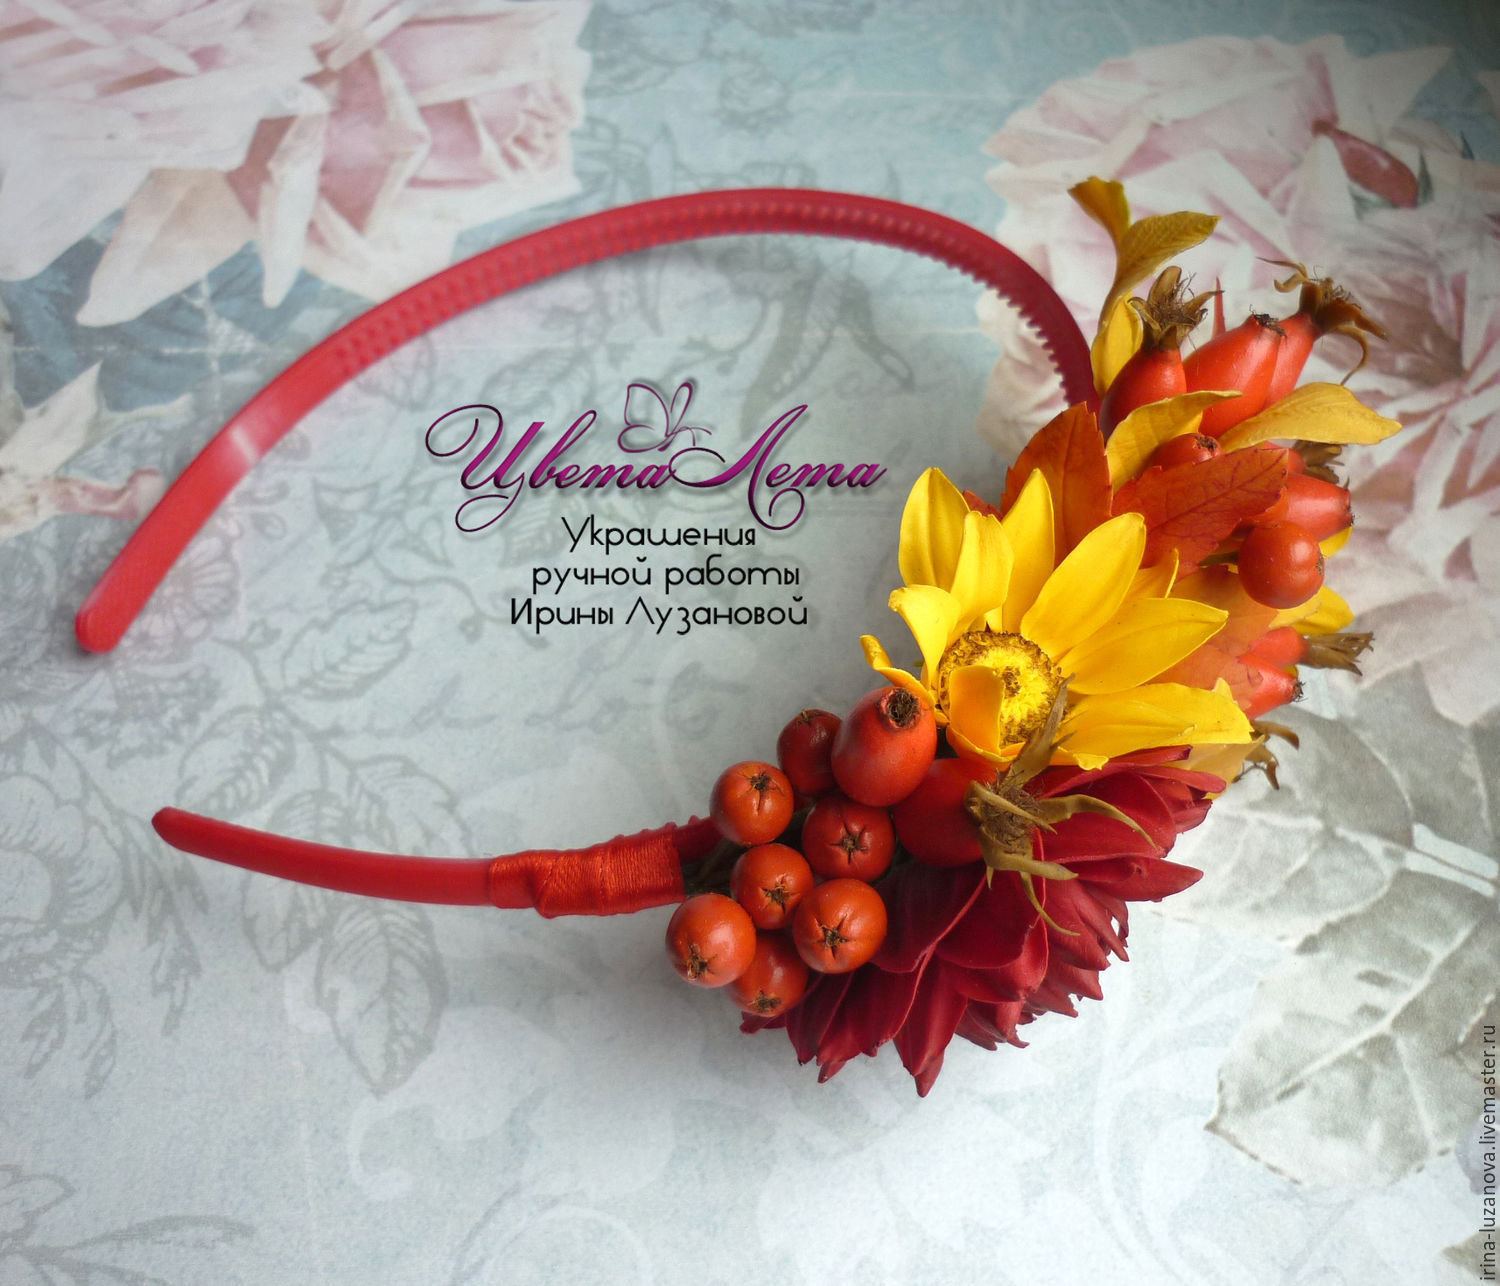 Autumn rose and Dahlia, daisies, Rowan, and wild rose made of polymer clay